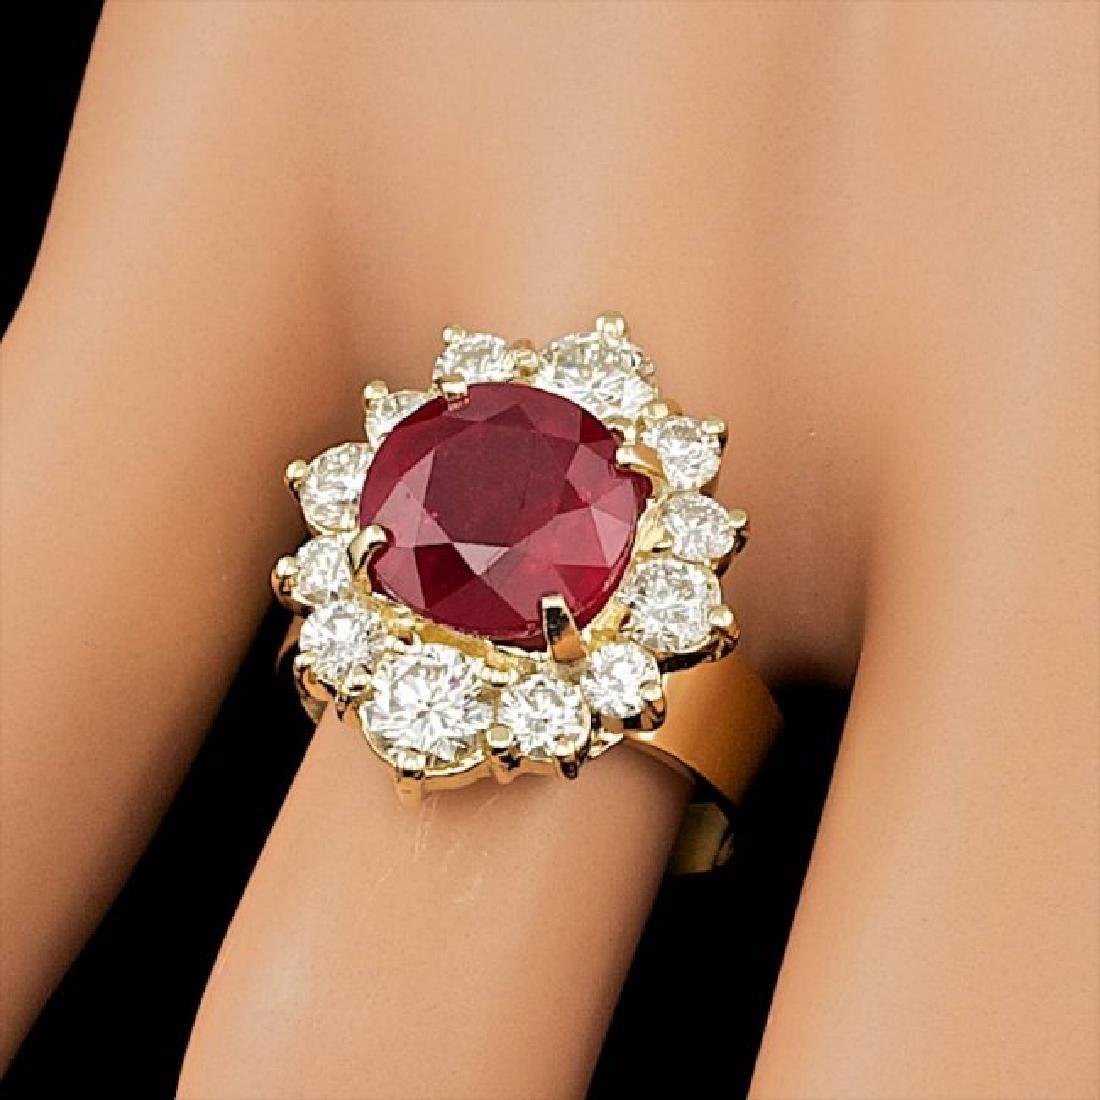 14k Yellow Gold 5.50ct Ruby 1.85ct Diamond Ring - 3